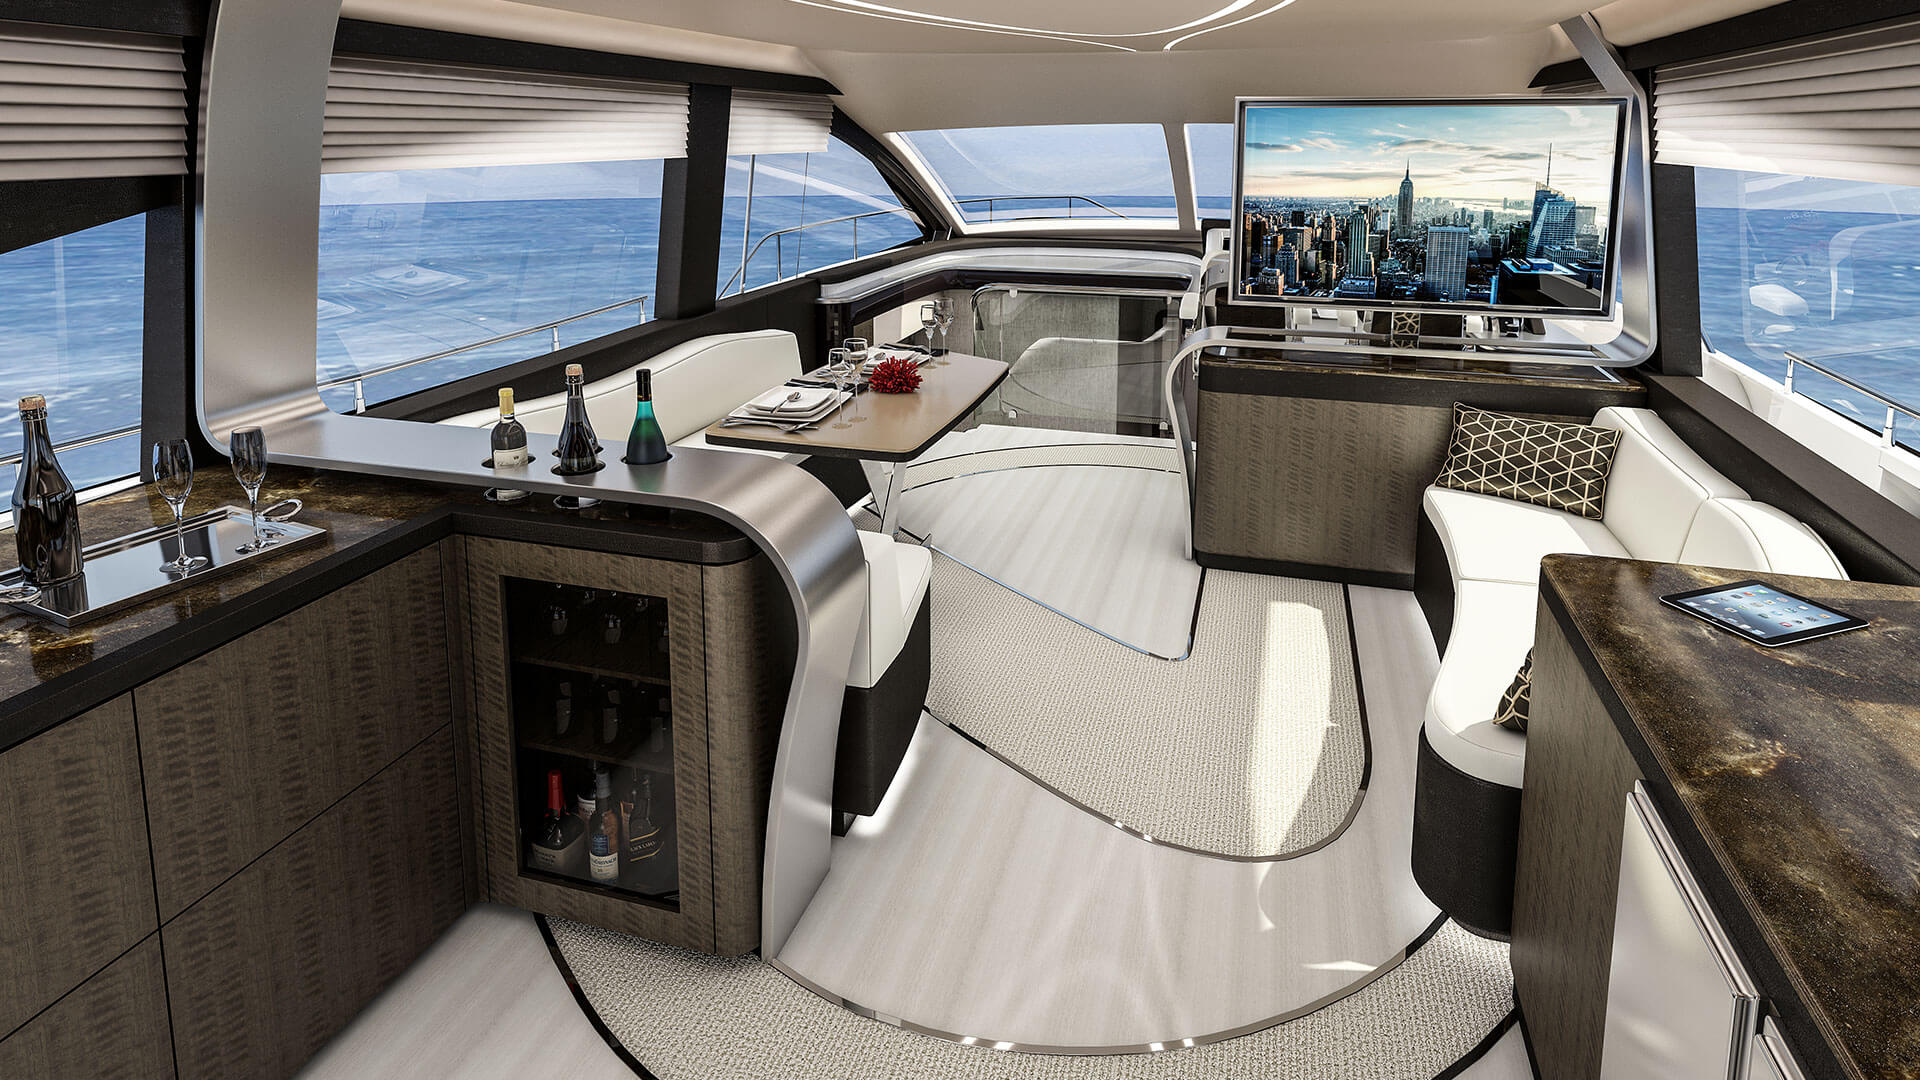 2019 lexus ly 650 luxury yacht gallery 02